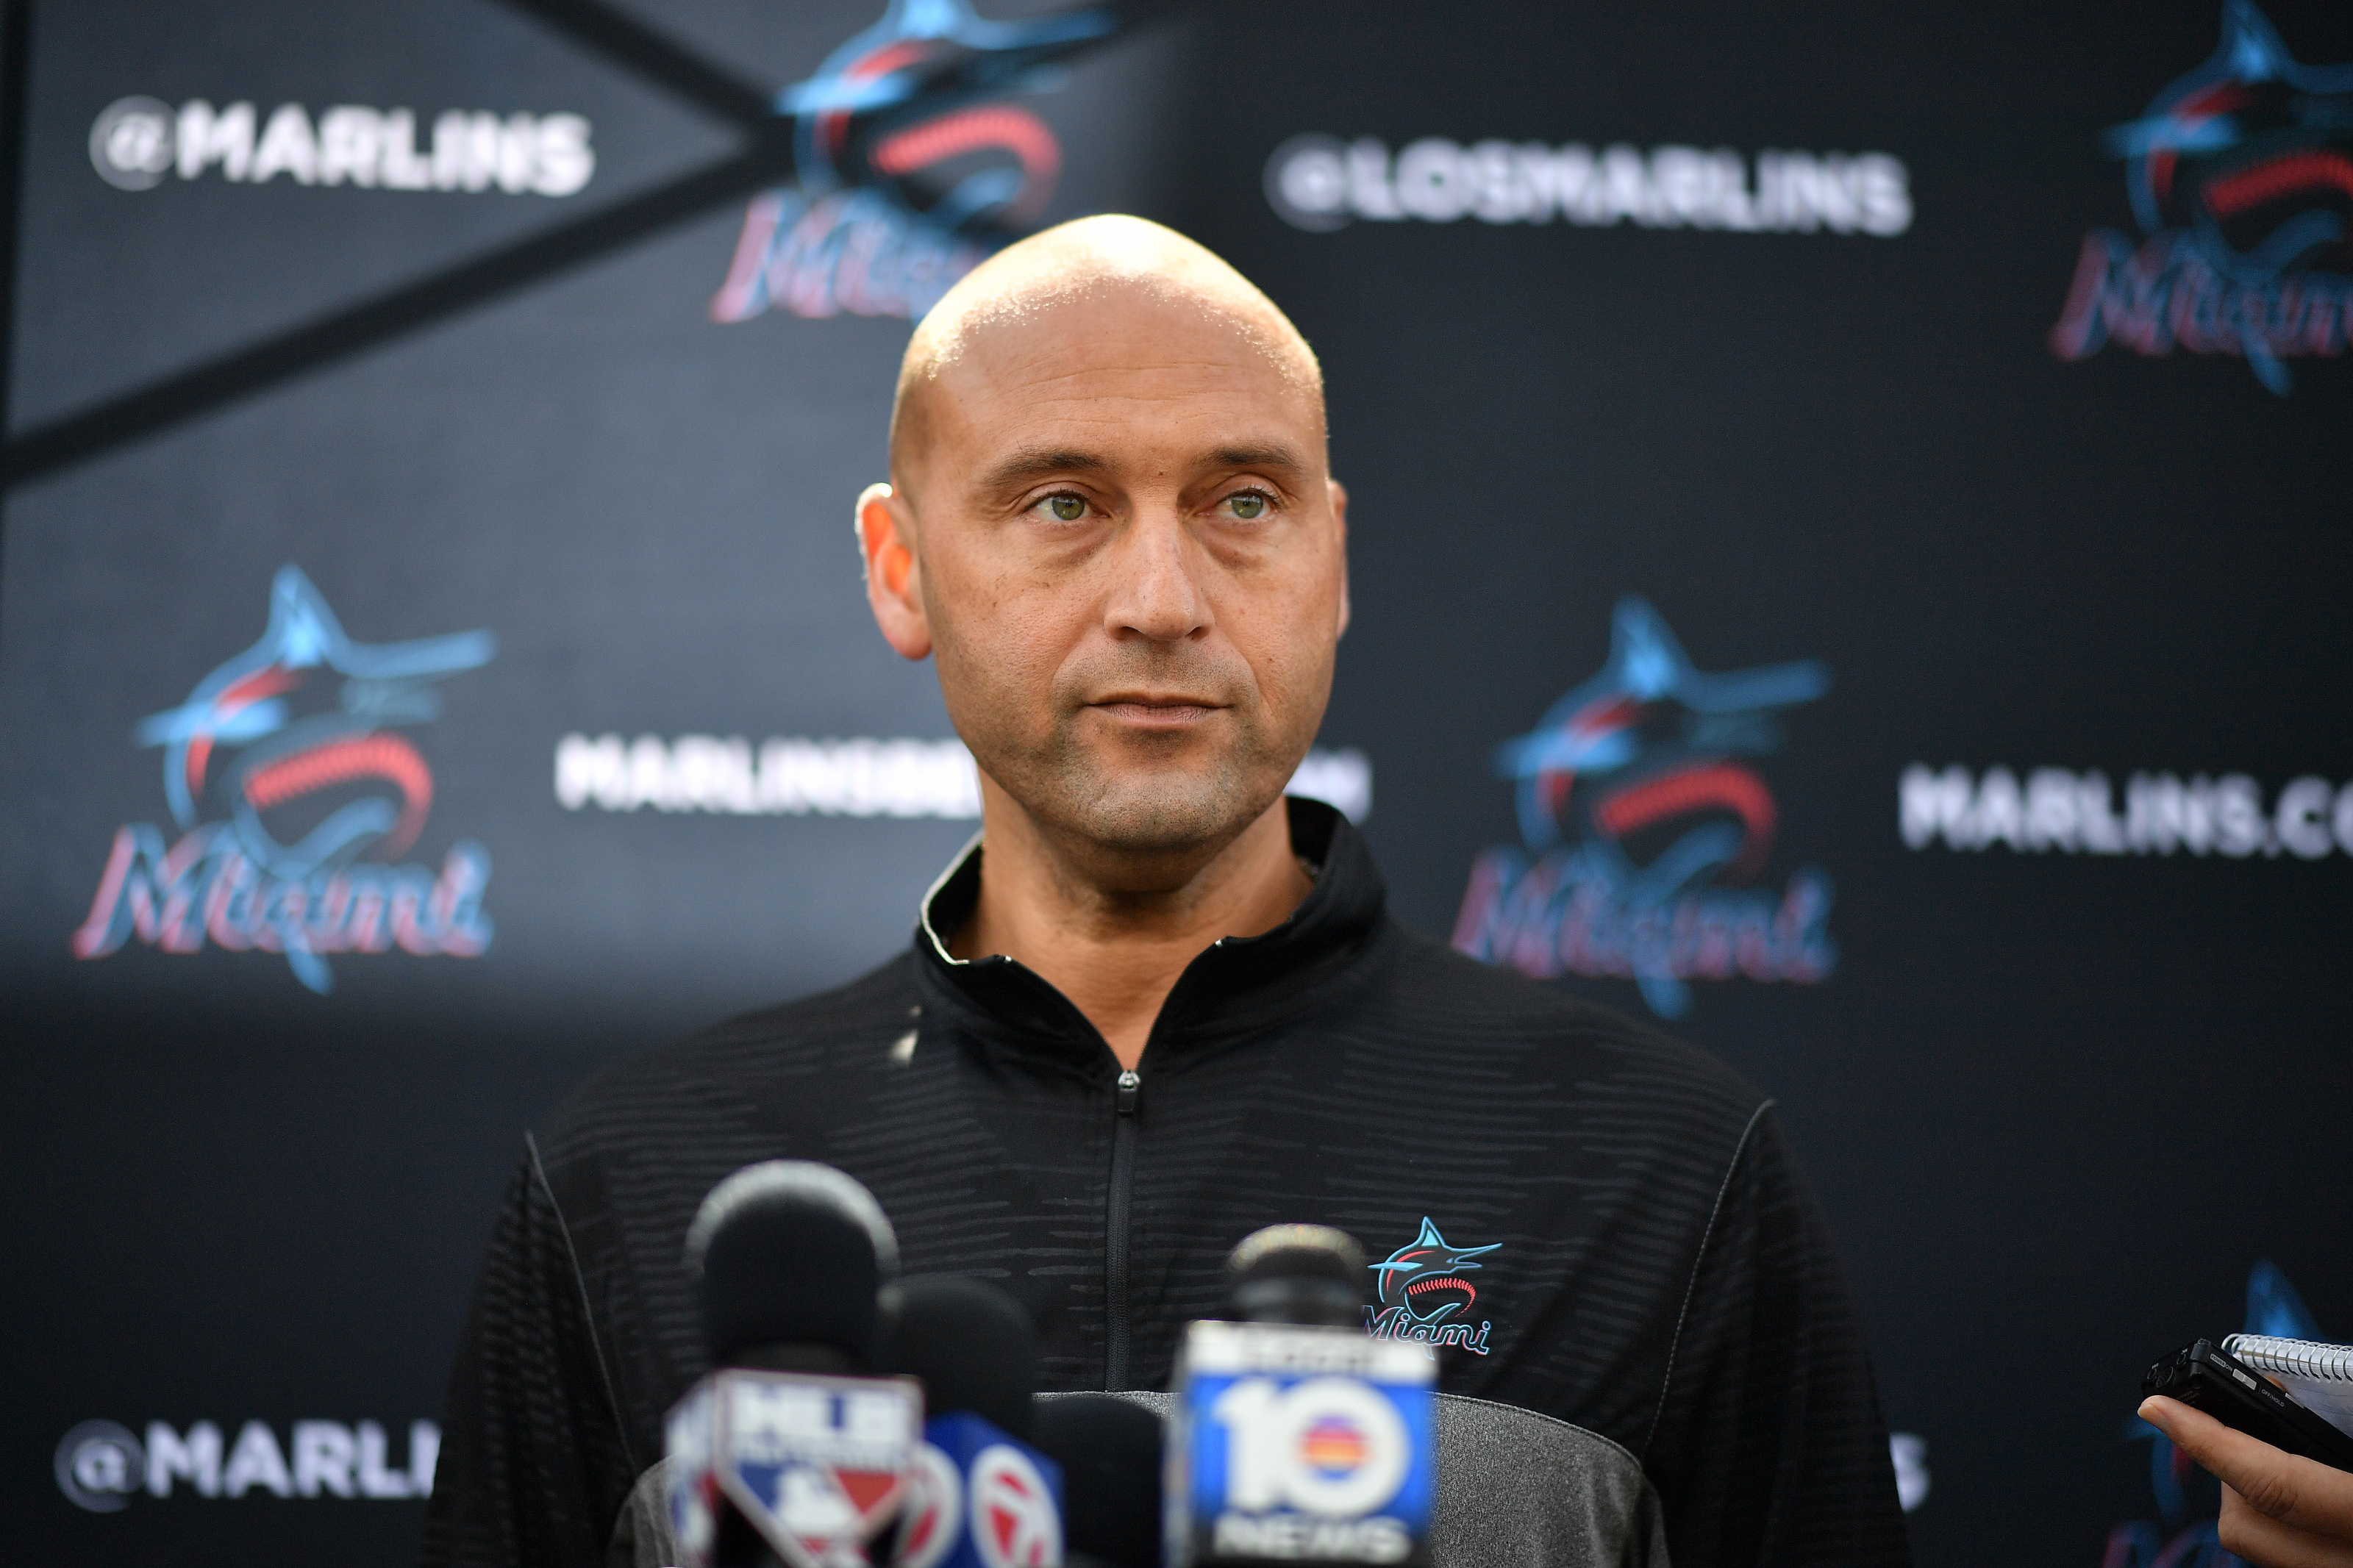 Houston Astros: Derek Jeter offers his opinion on sign-stealing scandal